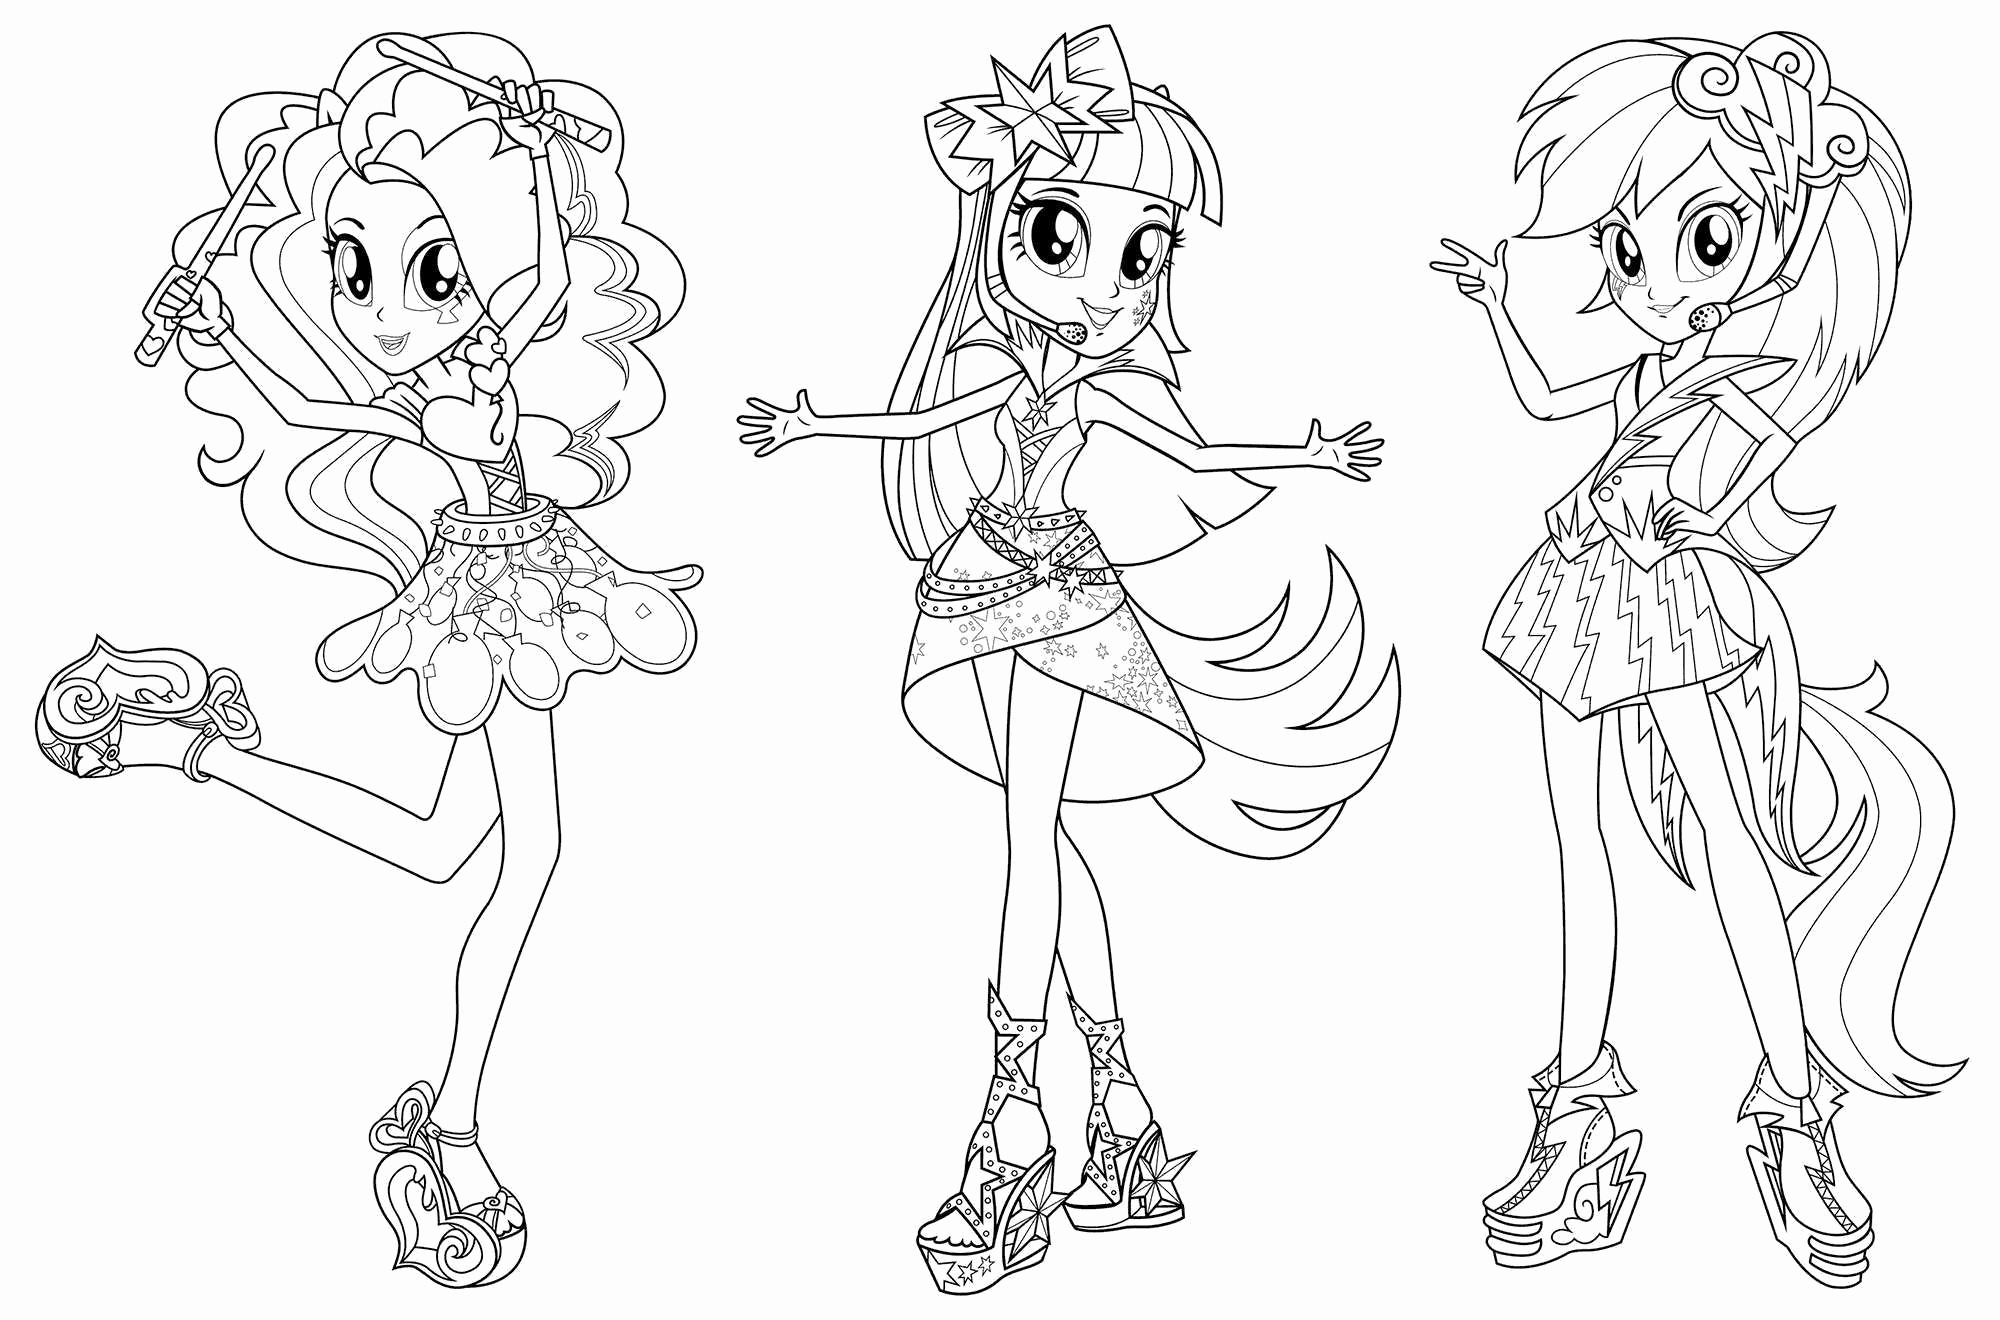 Equestria Girls Spiele Schön 24 My Little Pony Equestria Girl Coloring Pages Download